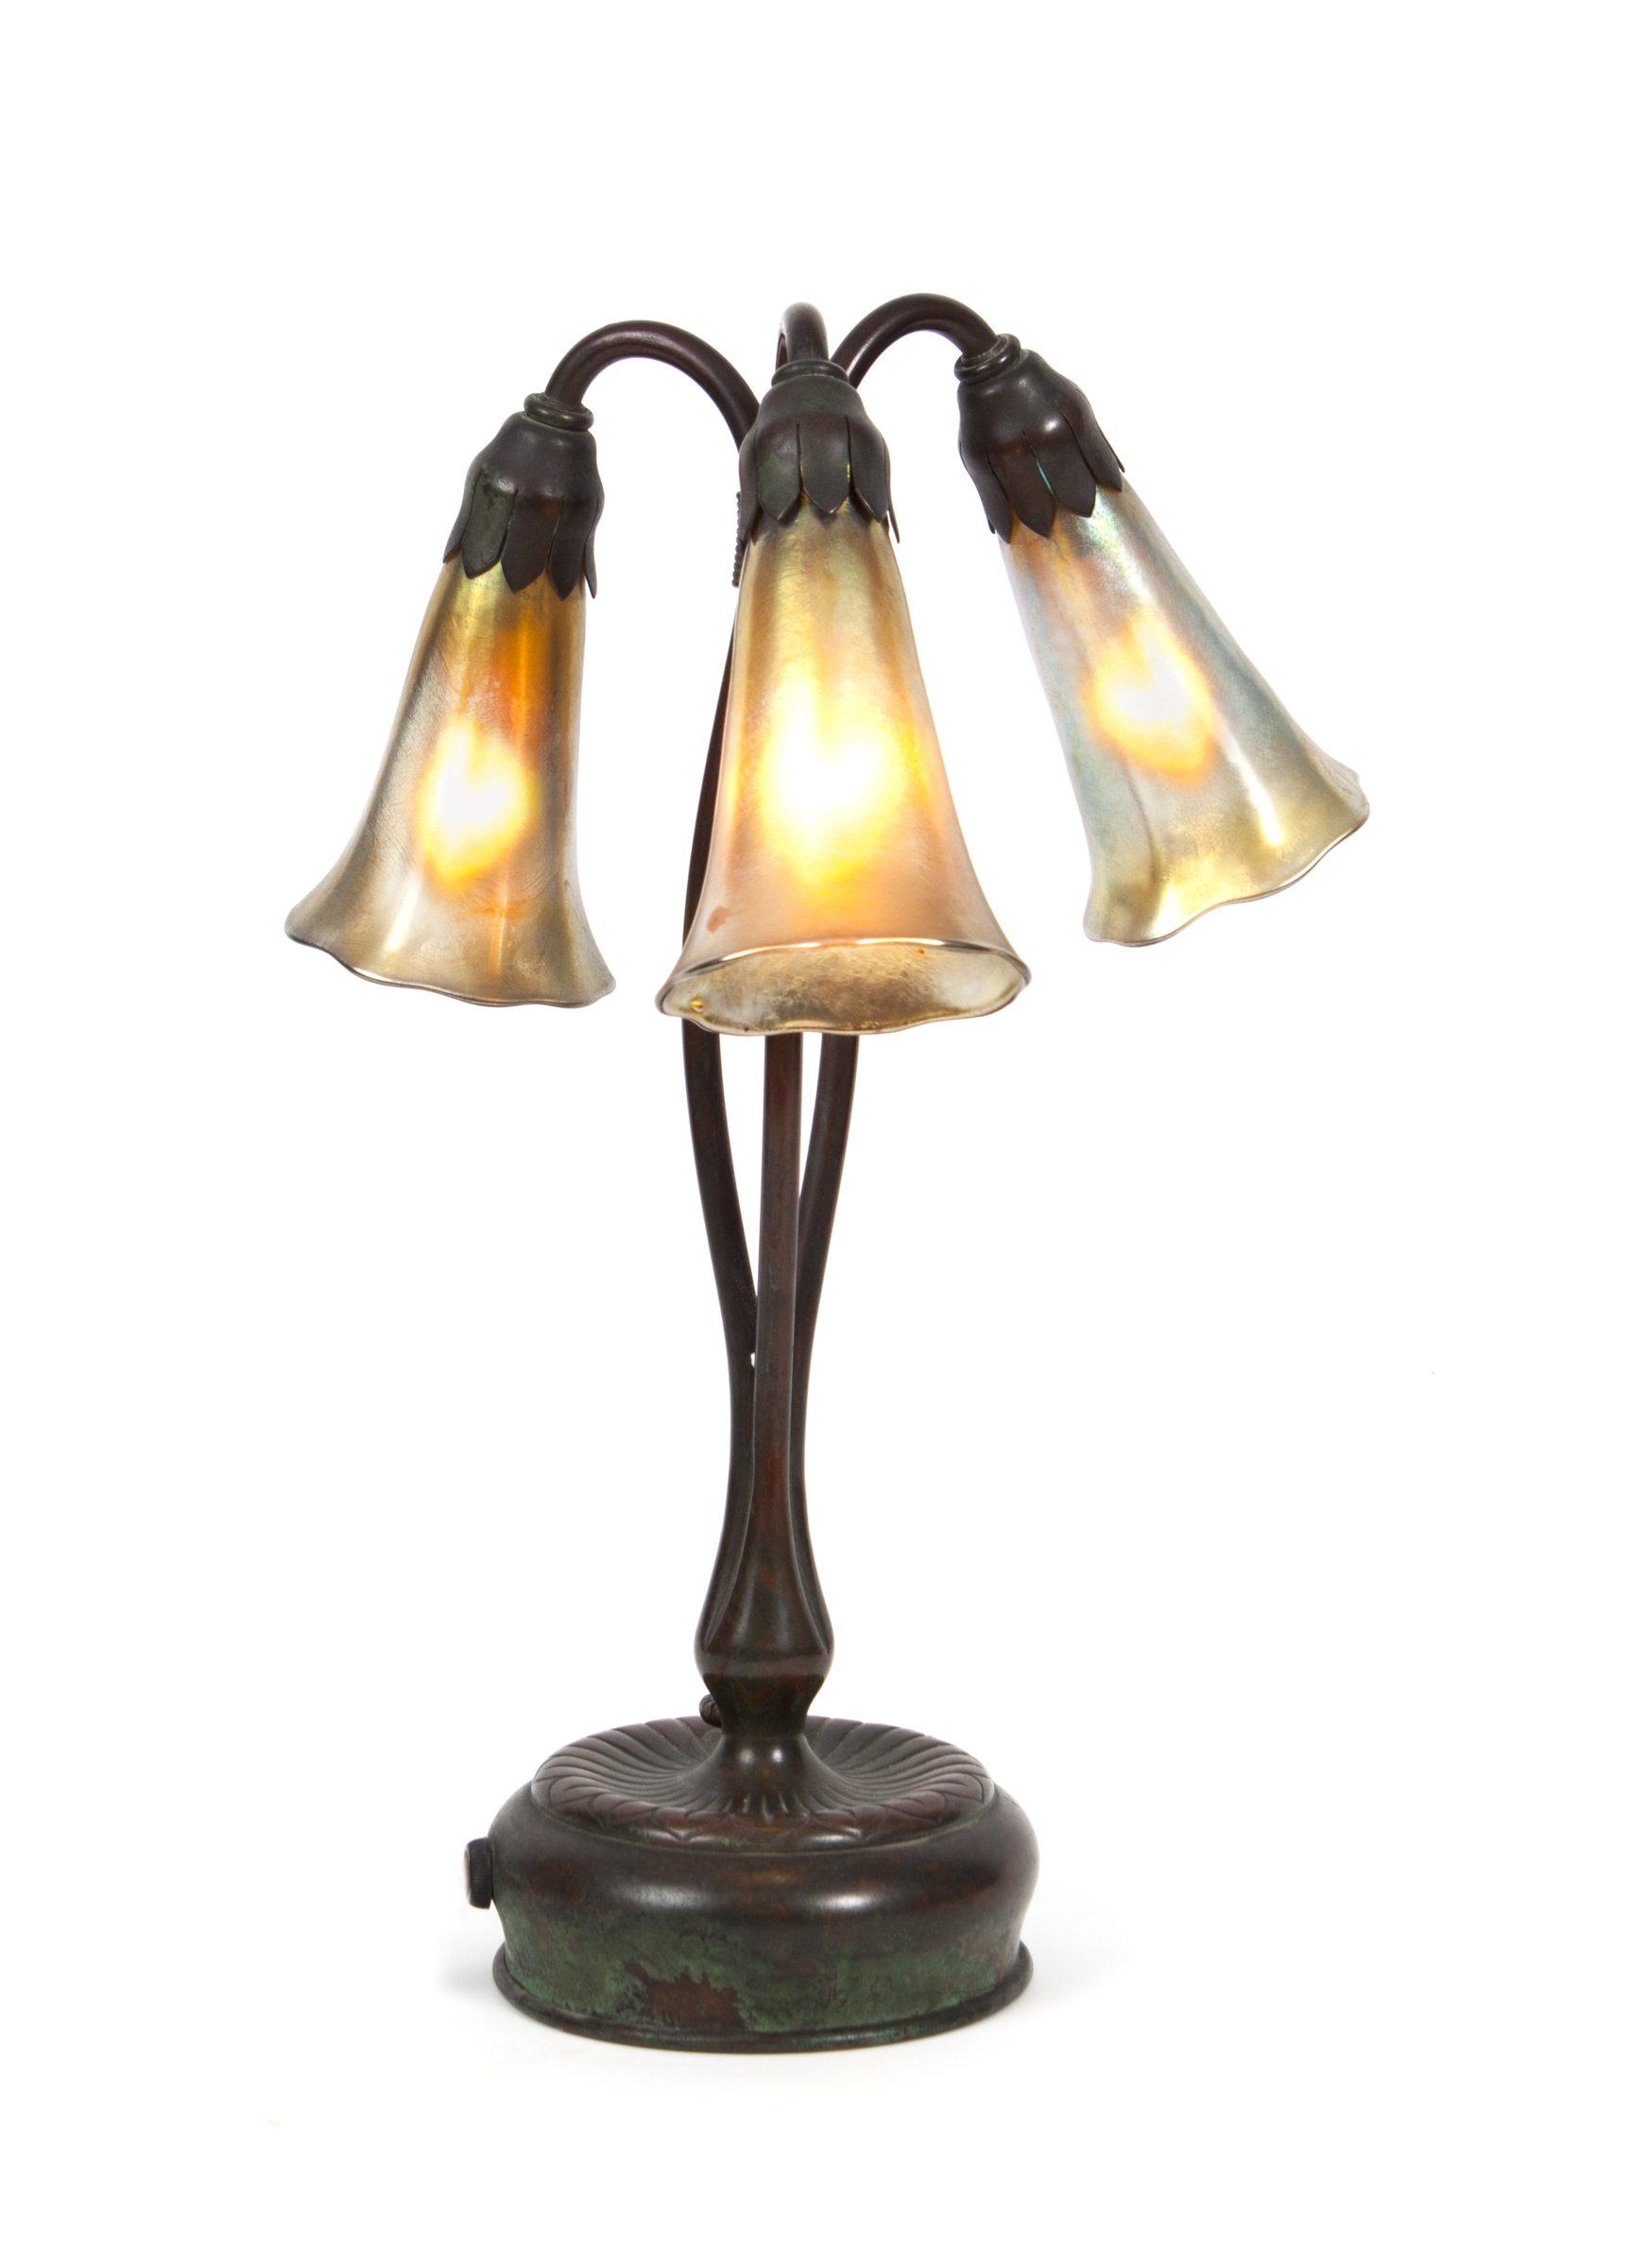 Tiffany Lamp Baltimore Product Photographer.jpg